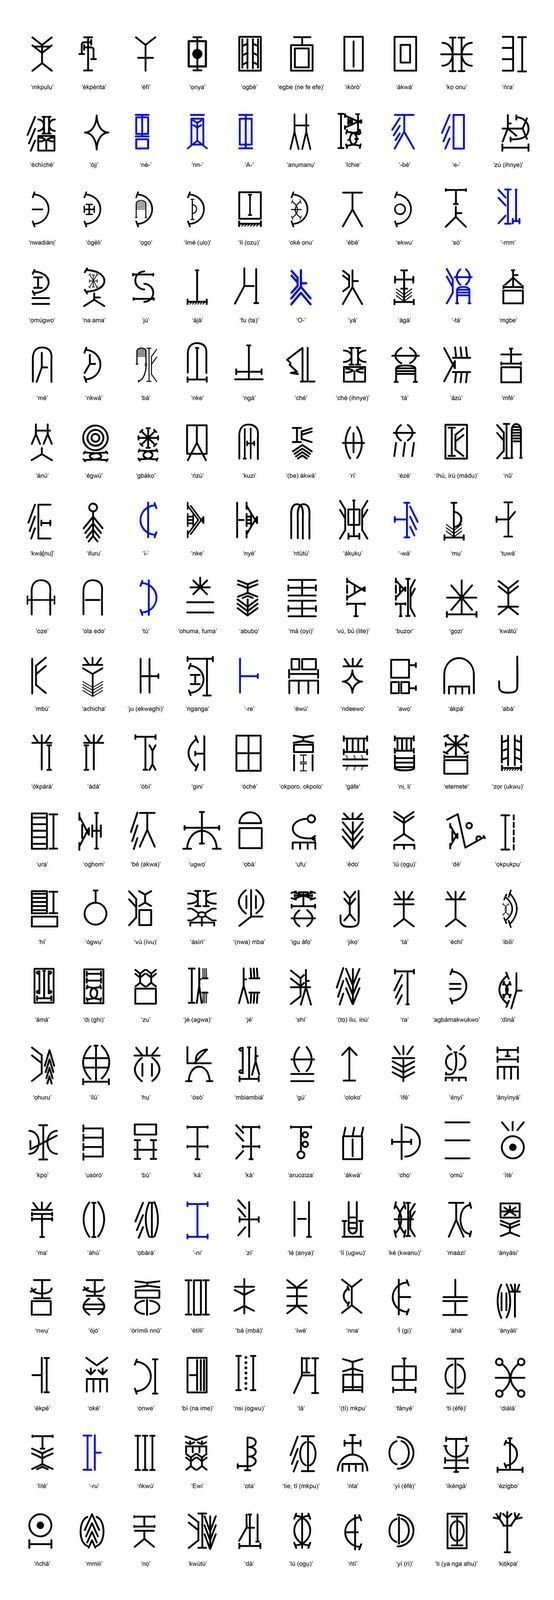 Symbols and their meanings egyptian symbols and their meanings symbols and their meanings egyptian symbols and their meanings nsibidi writing system by catalina more biocorpaavc Image collections